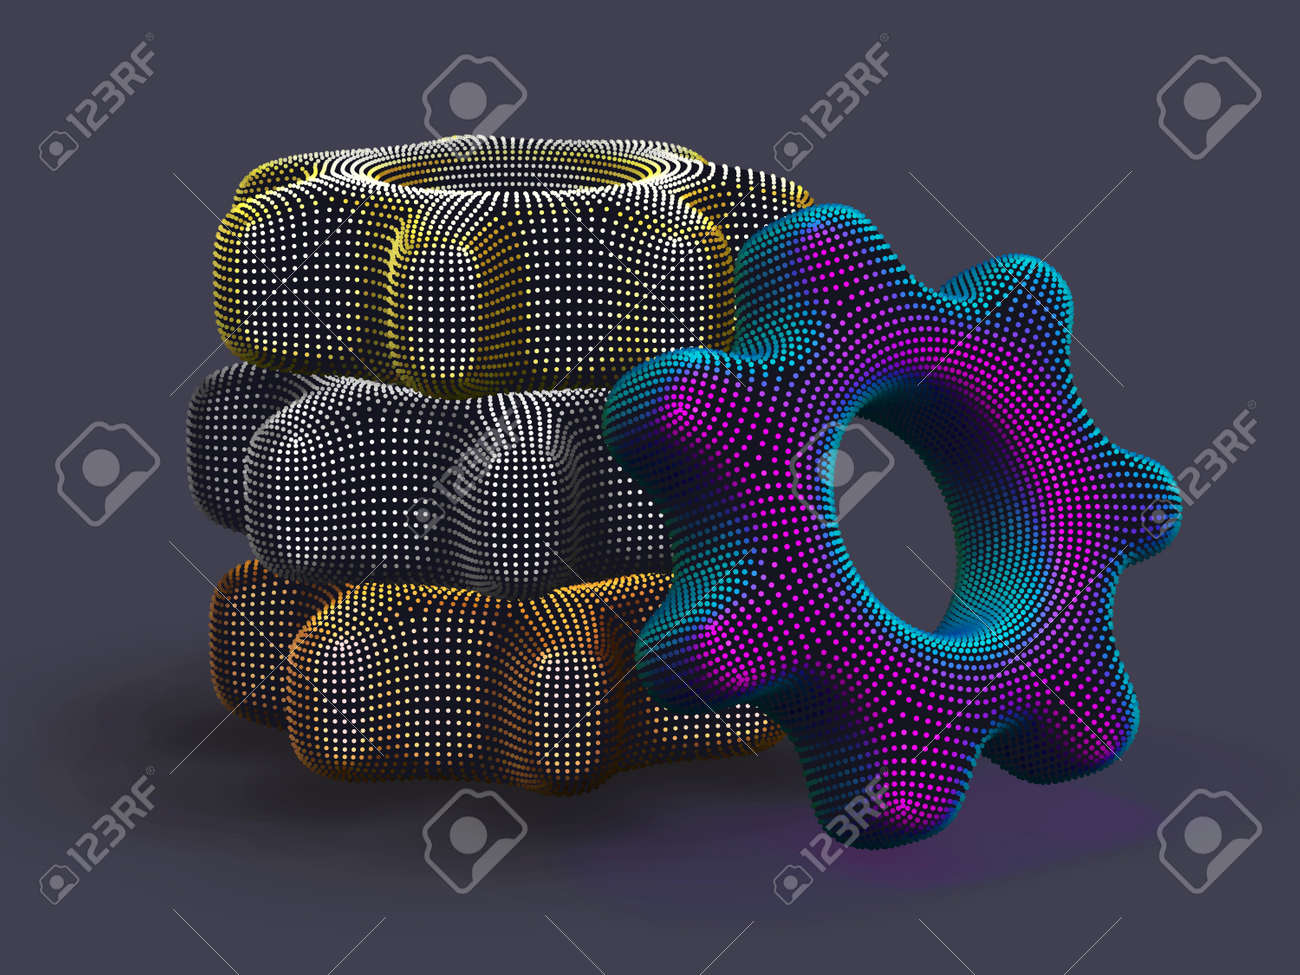 Stack of 3D digital multicolored gears on gray background. Abstract vector illustration of futuristic cogwheels made of dots. Business partnership, teamwork and process workflow optimization concept. - 162069090